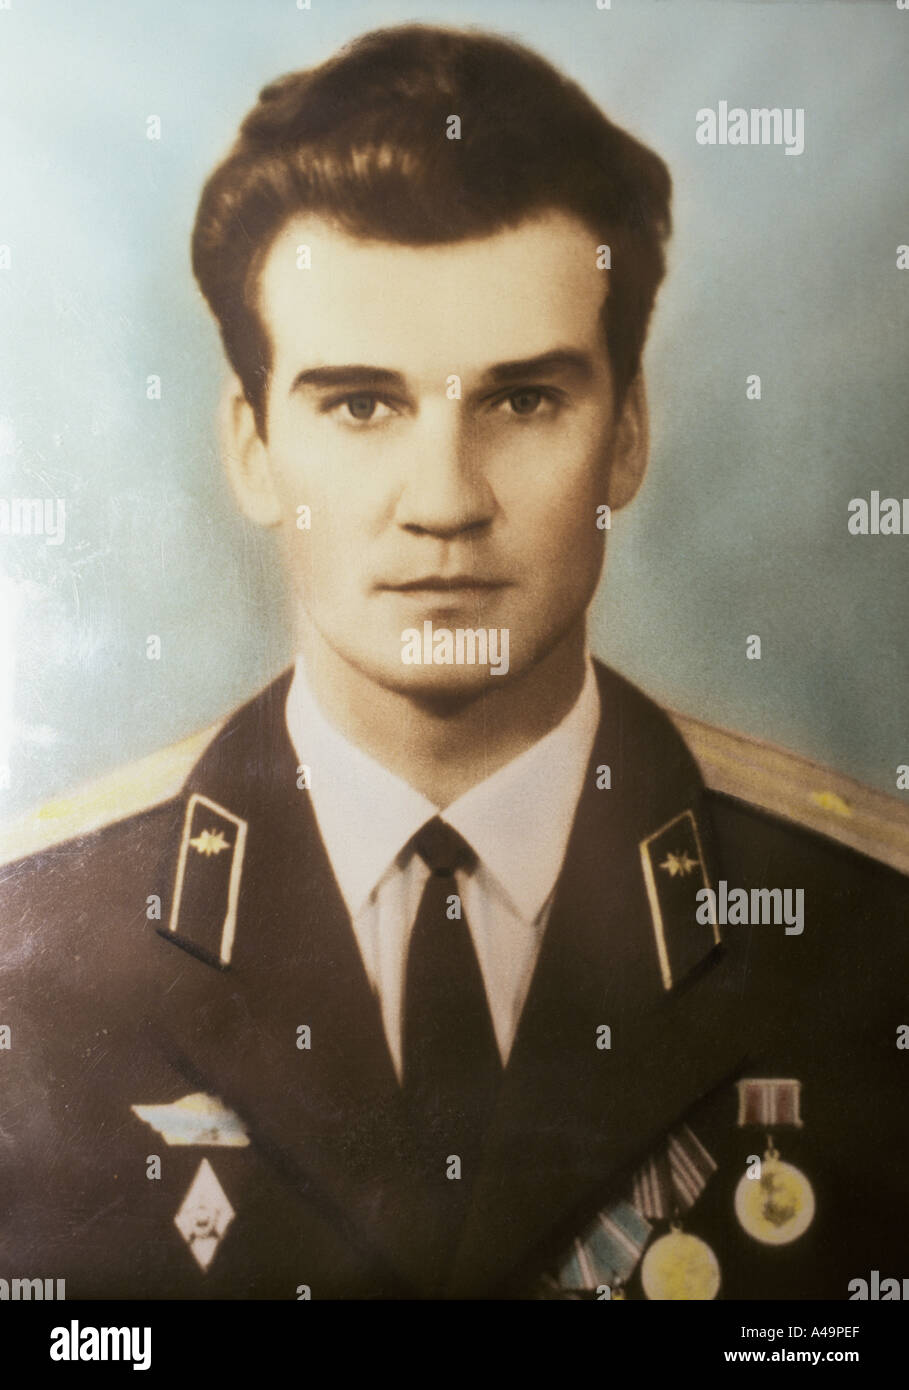 man who saved the earth stanislav petrov former soviet military prevented potential nuclear launch early photograph 1999 - Stock Image